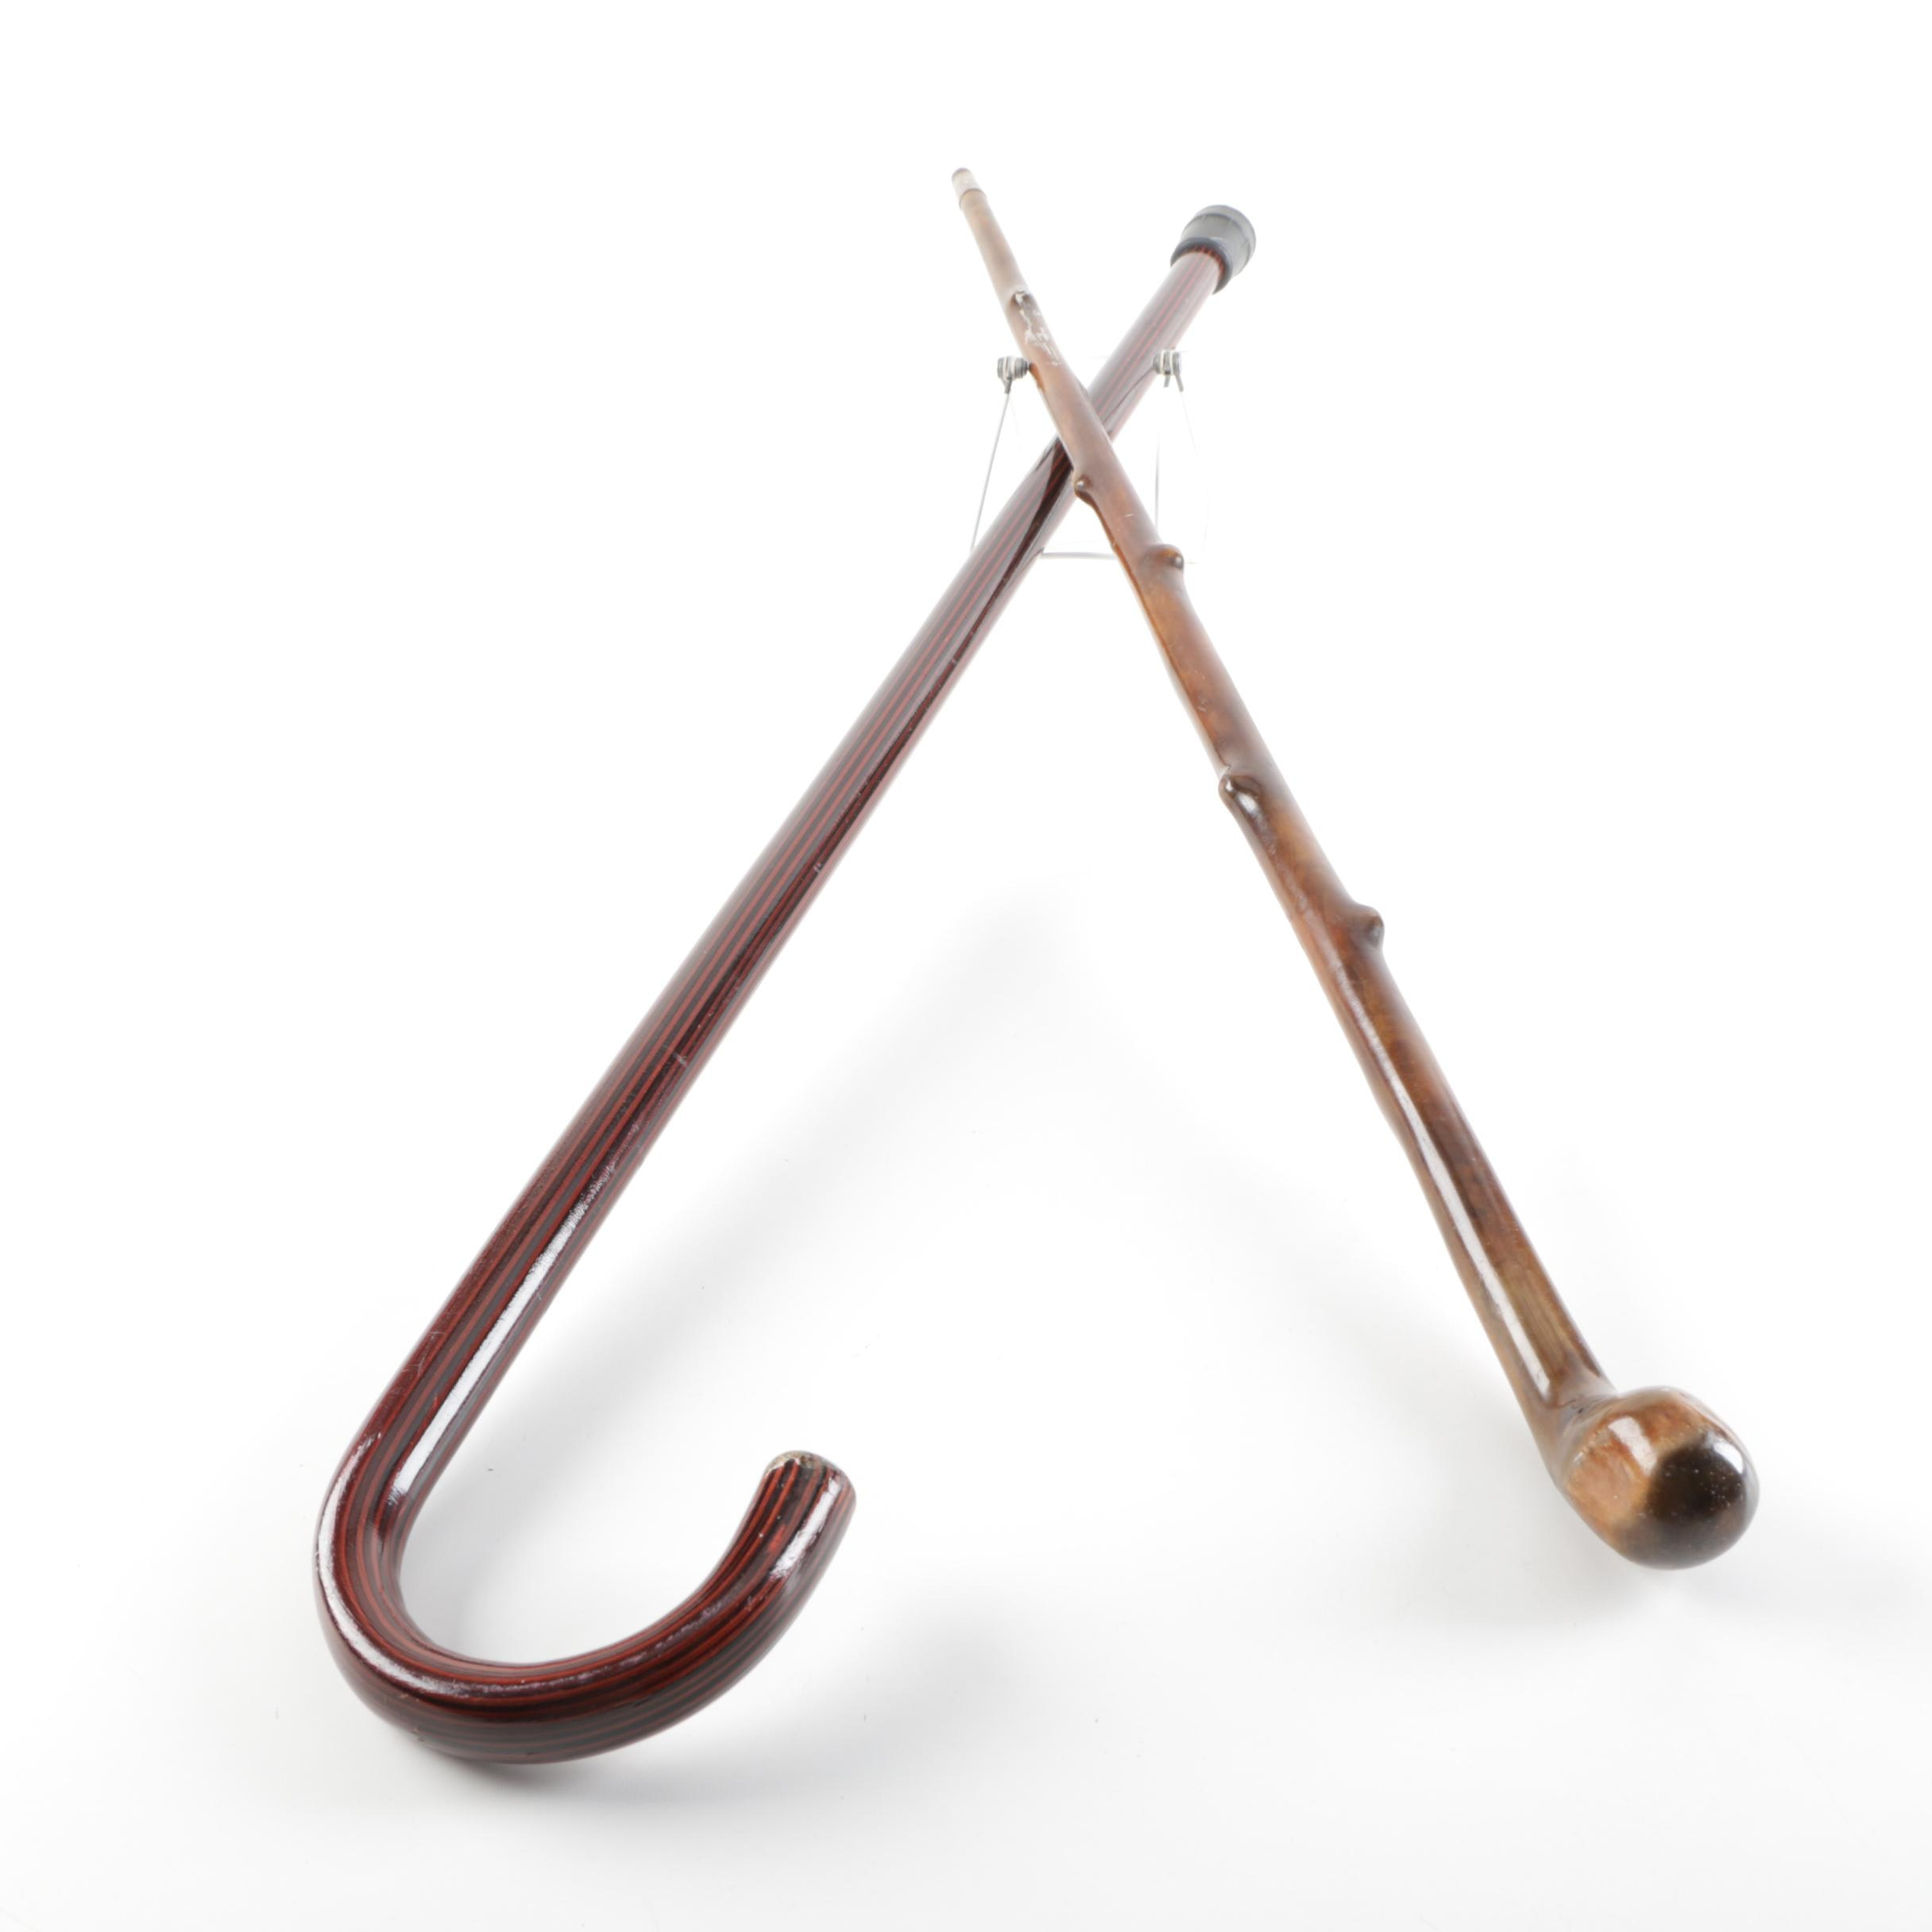 Wooden Crook Handle Cane and Walking Stick